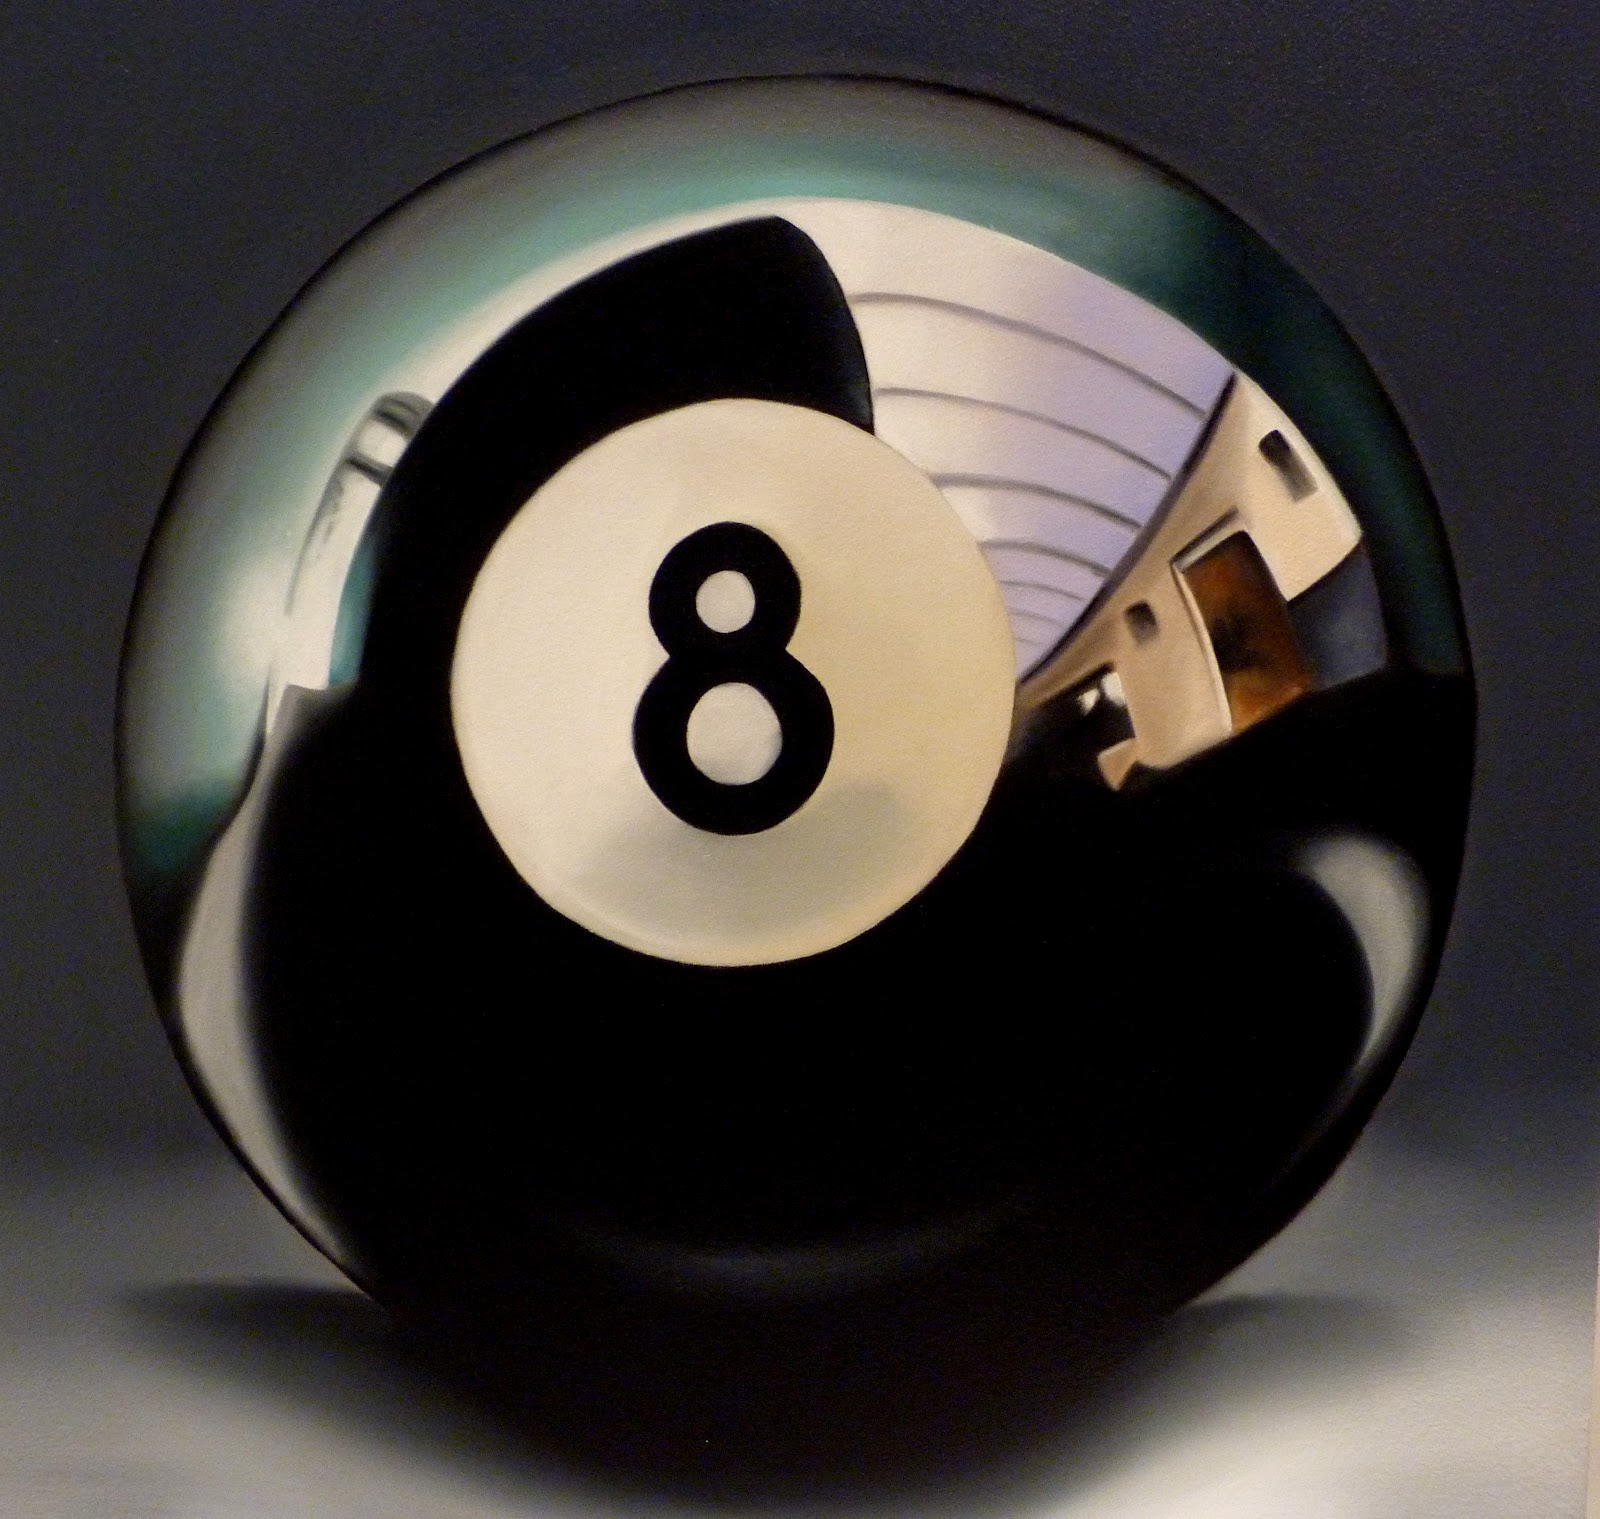 Chris morgan the art of realism july 2012 - 8 ball pictures ...